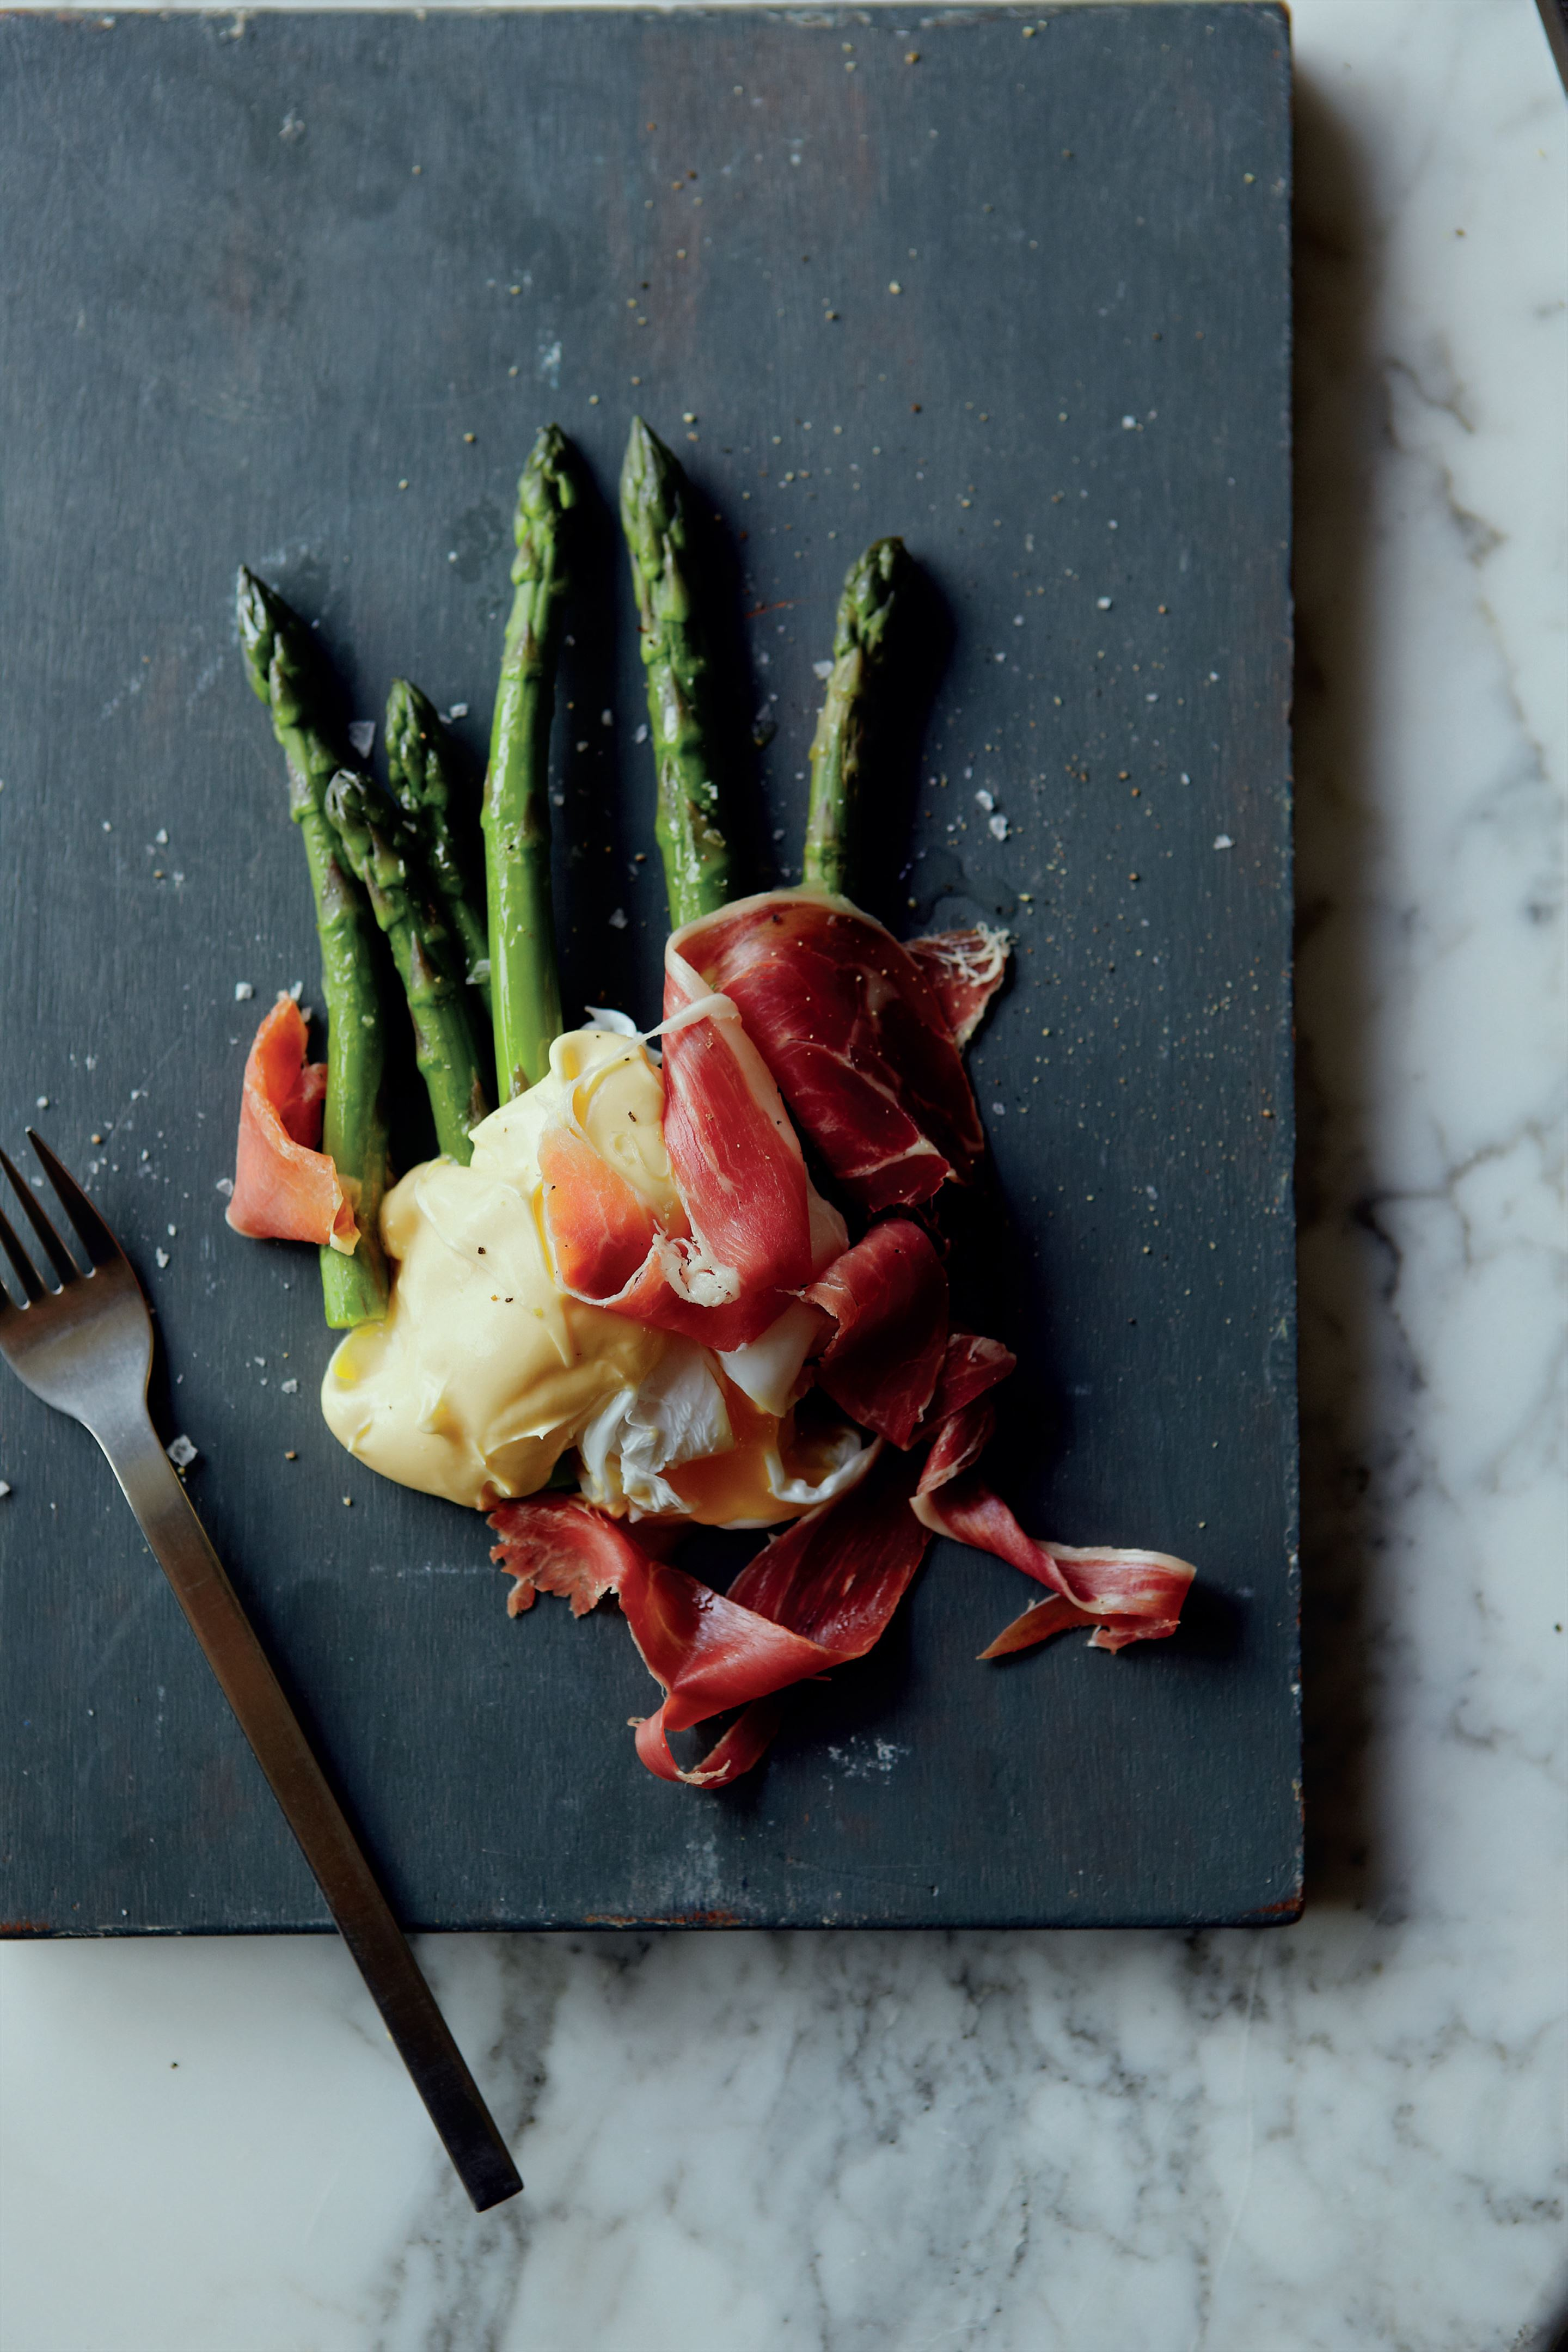 Asparagus, cured ham, poached duck egg and hollandaise